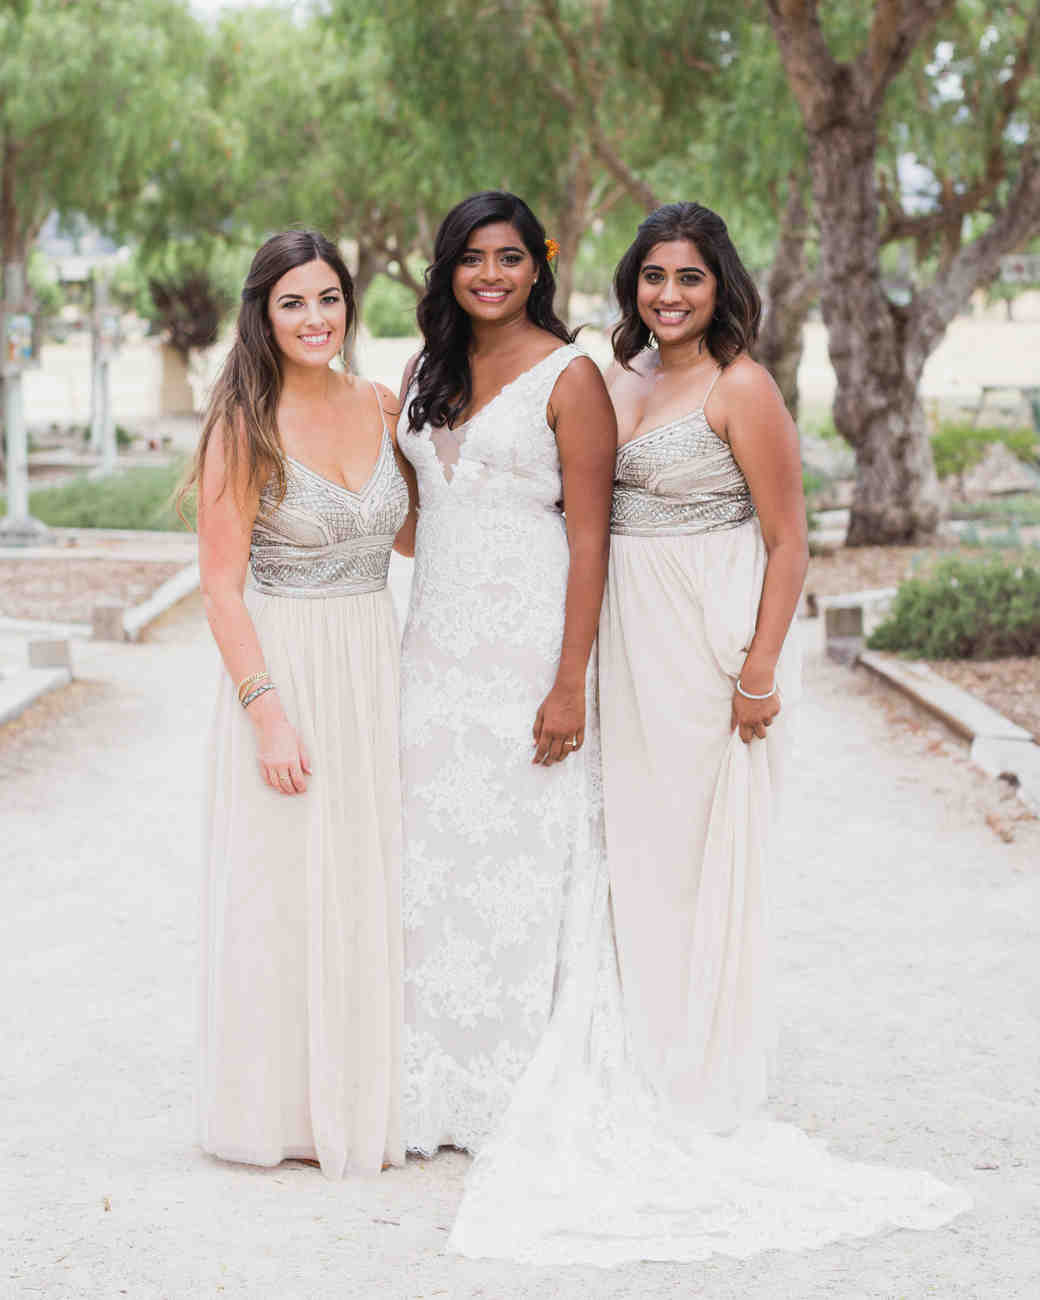 bridesmaid portrait in white dresses